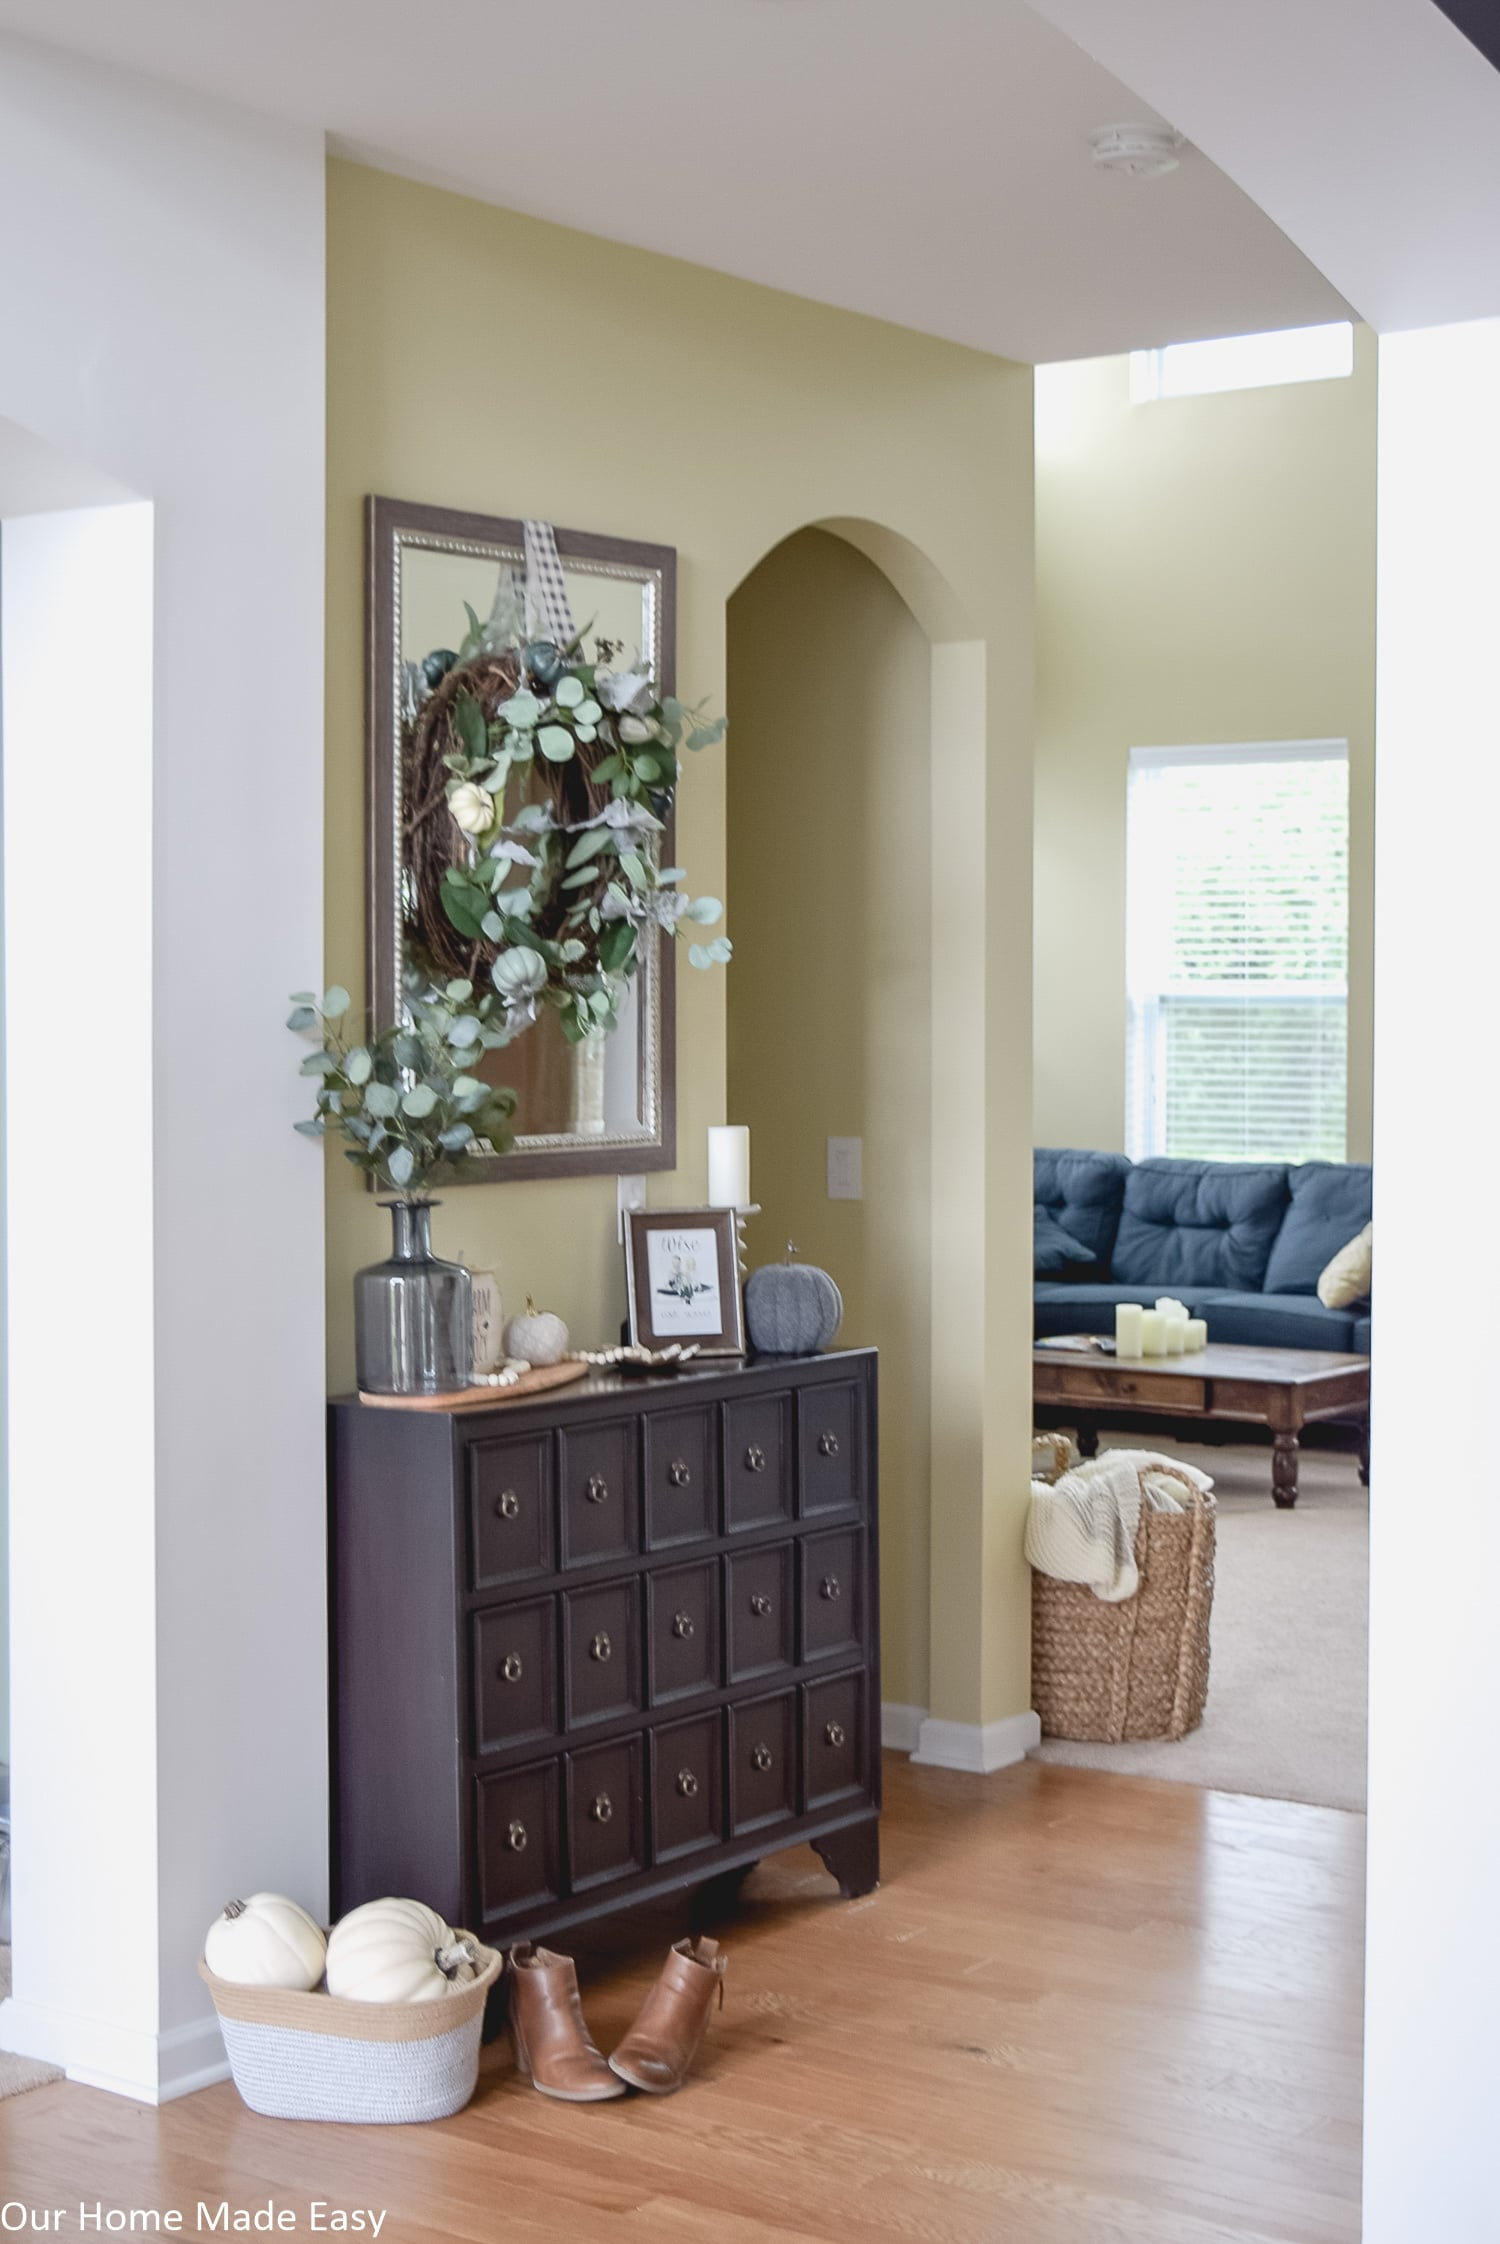 Subtle touches of fall decor around your home, like pumpkins and floral arrangements are easy ways to decorate for fall